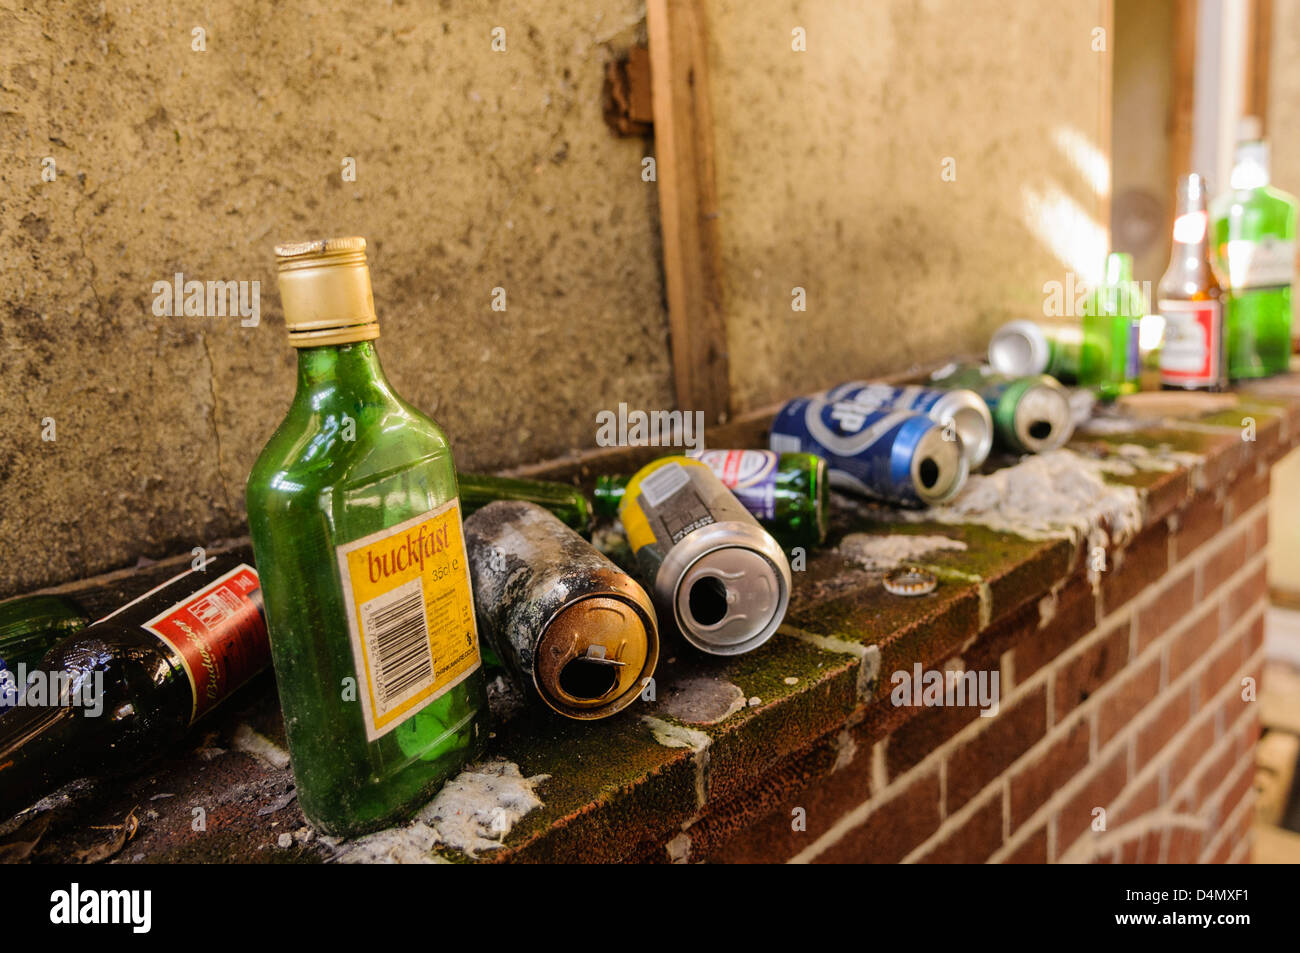 Lots of alcohol bottles and tins on the hearth of a very dirty house. - Stock Image